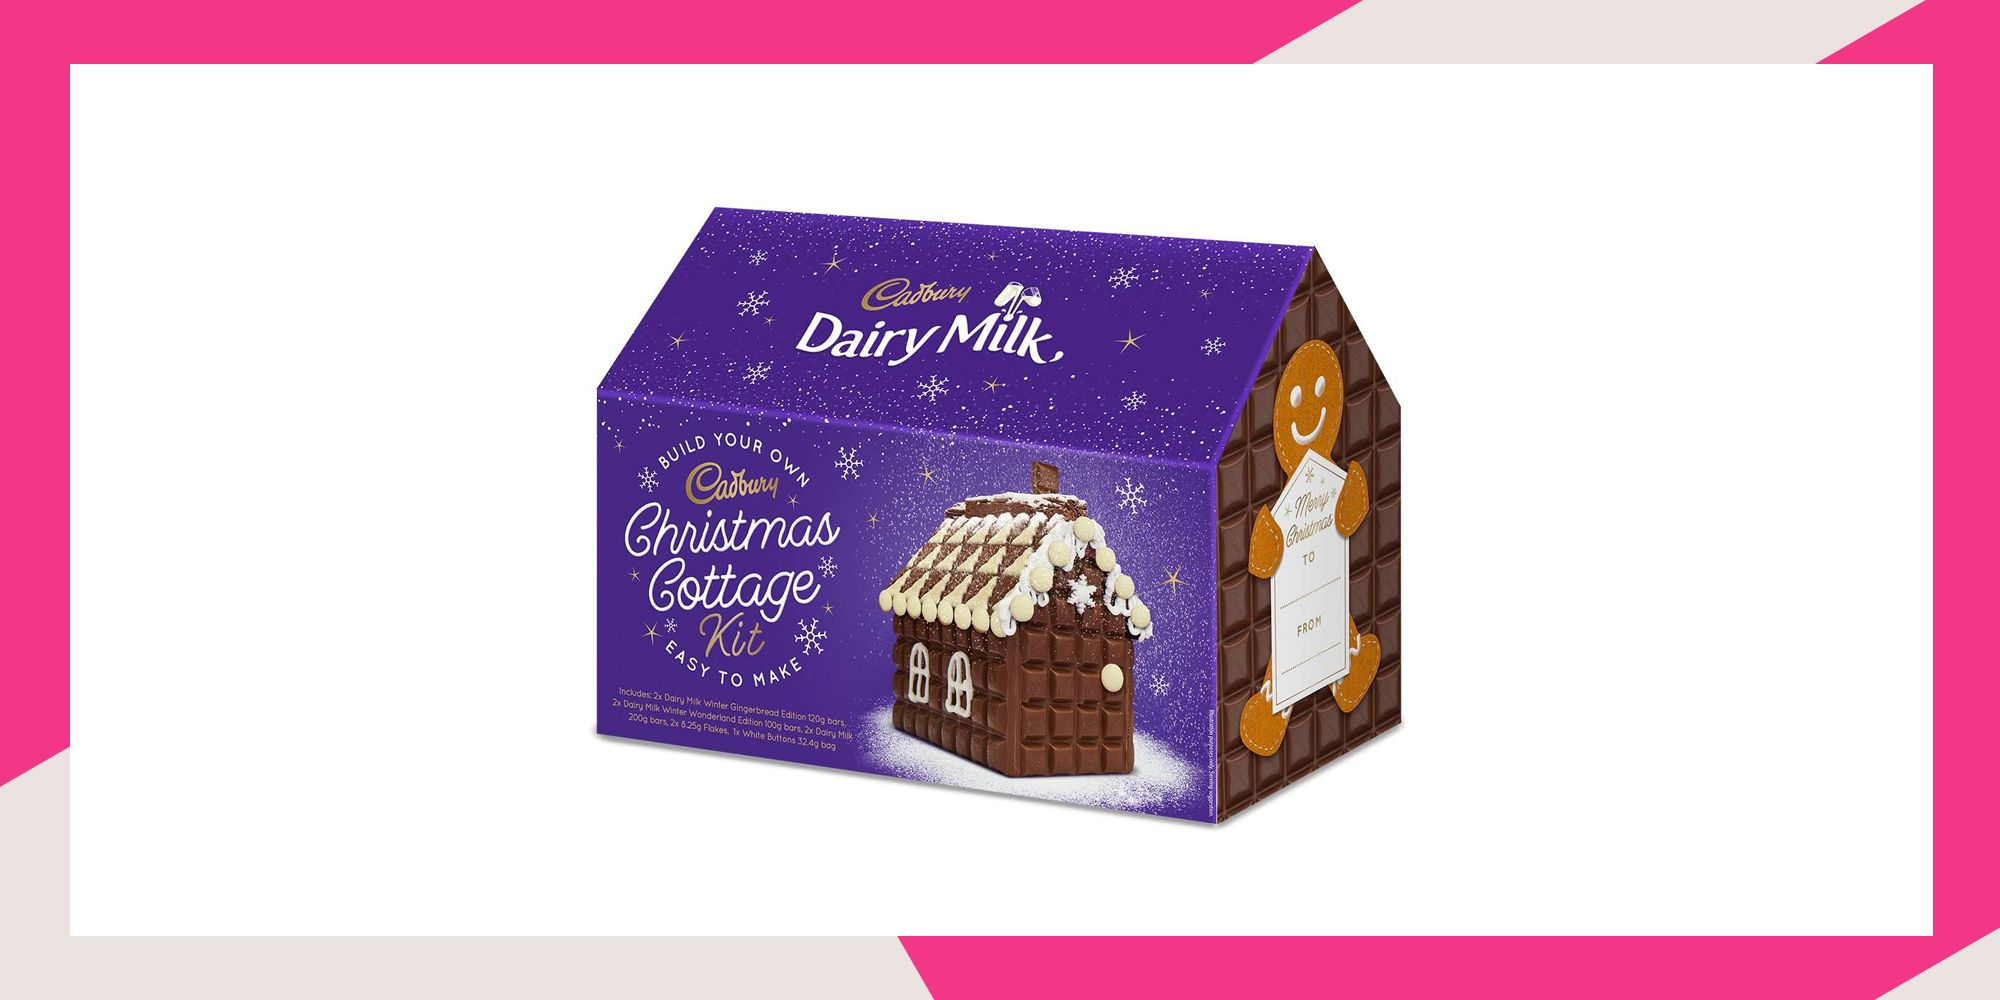 Cadbury Launches Chocolate Cottage Kit For Christmas